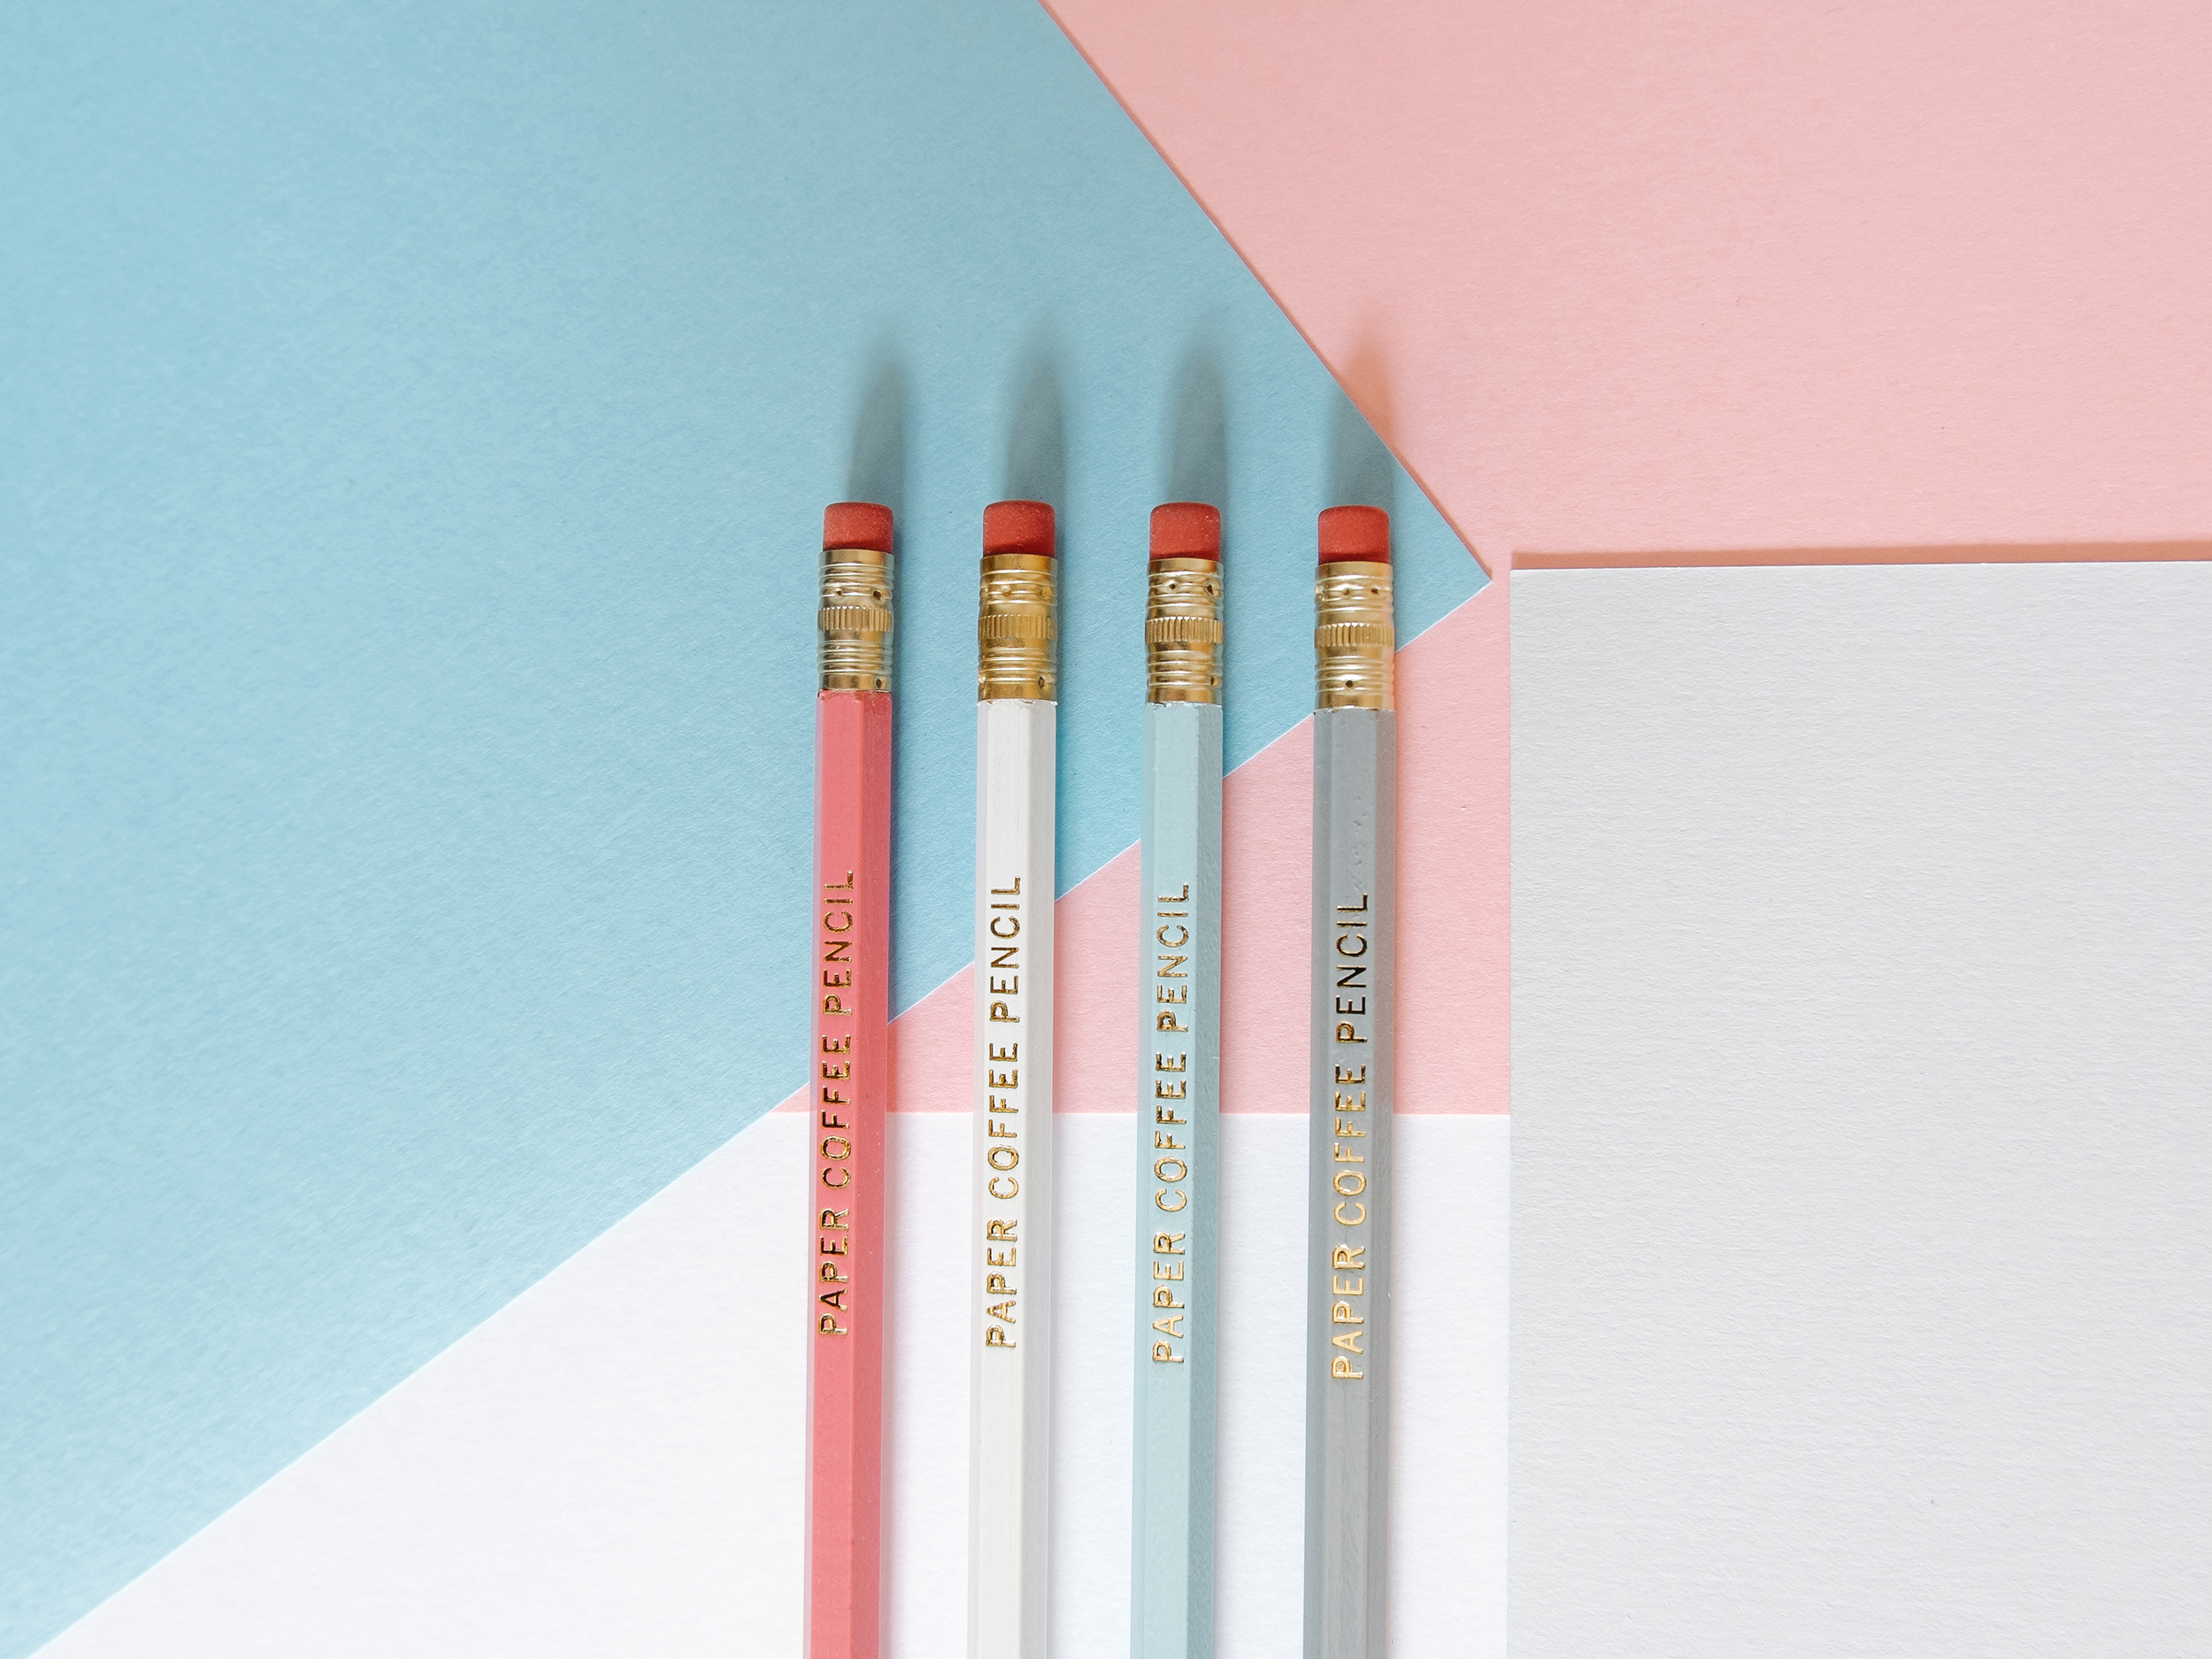 Paper Coffee Pencil Launches–Project Aims To Foster Artistic Community